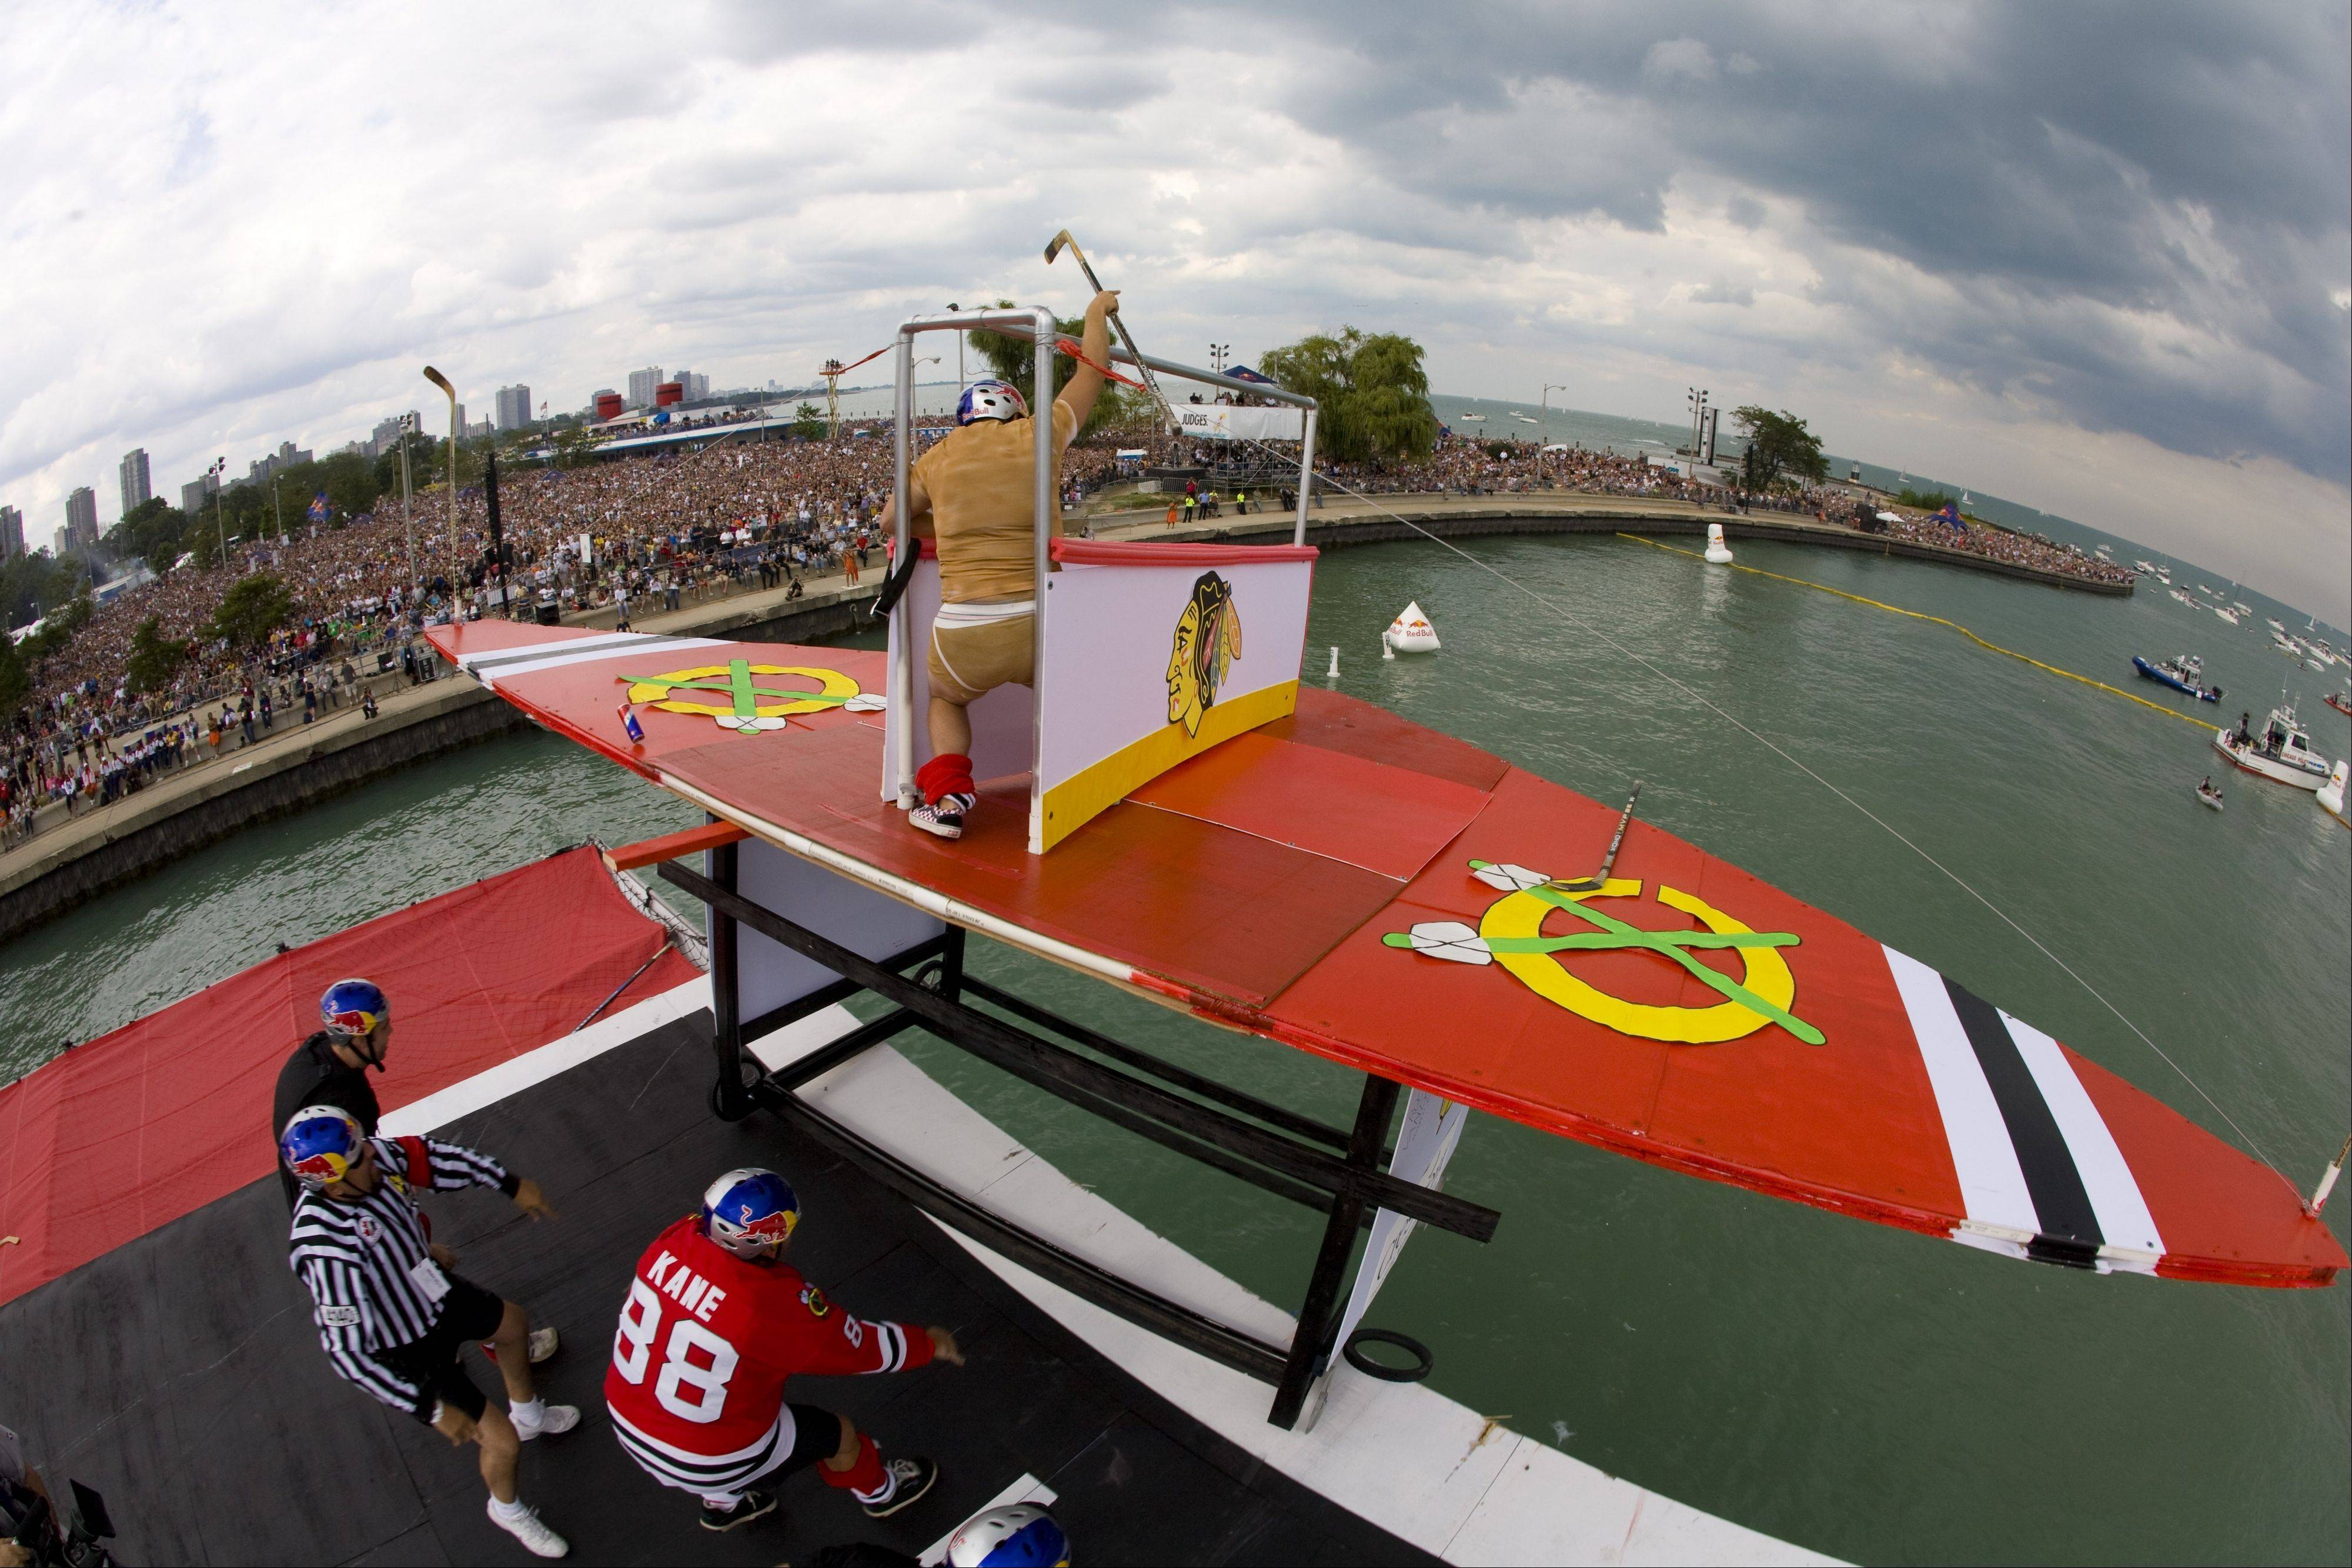 The Red Bull Flugtag, which attracted 75,000 people to Chicago's lakefront in 2008, has been canceled because of marine conditions.